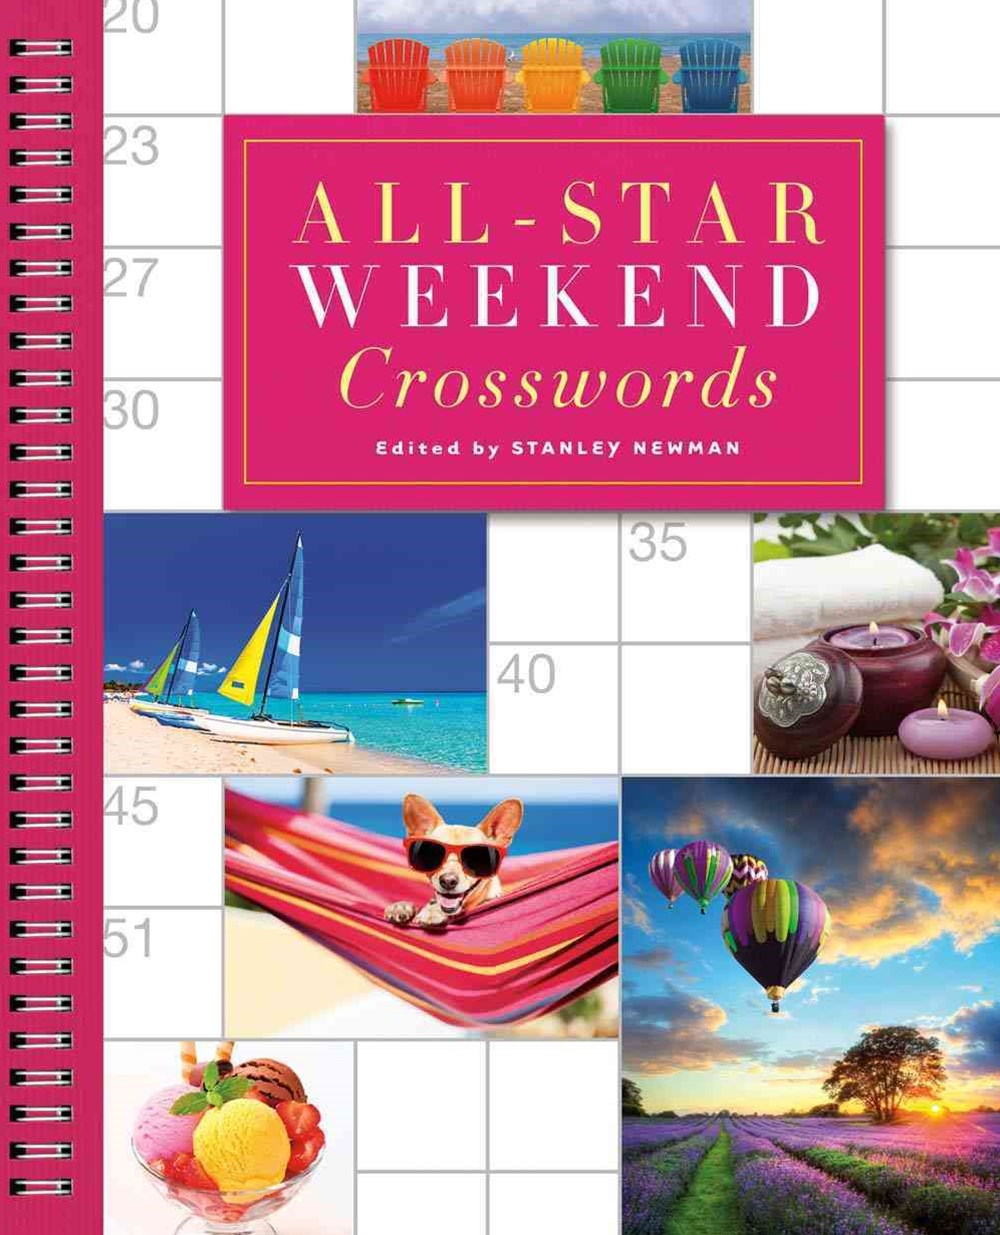 All-Star Weekend Crosswords